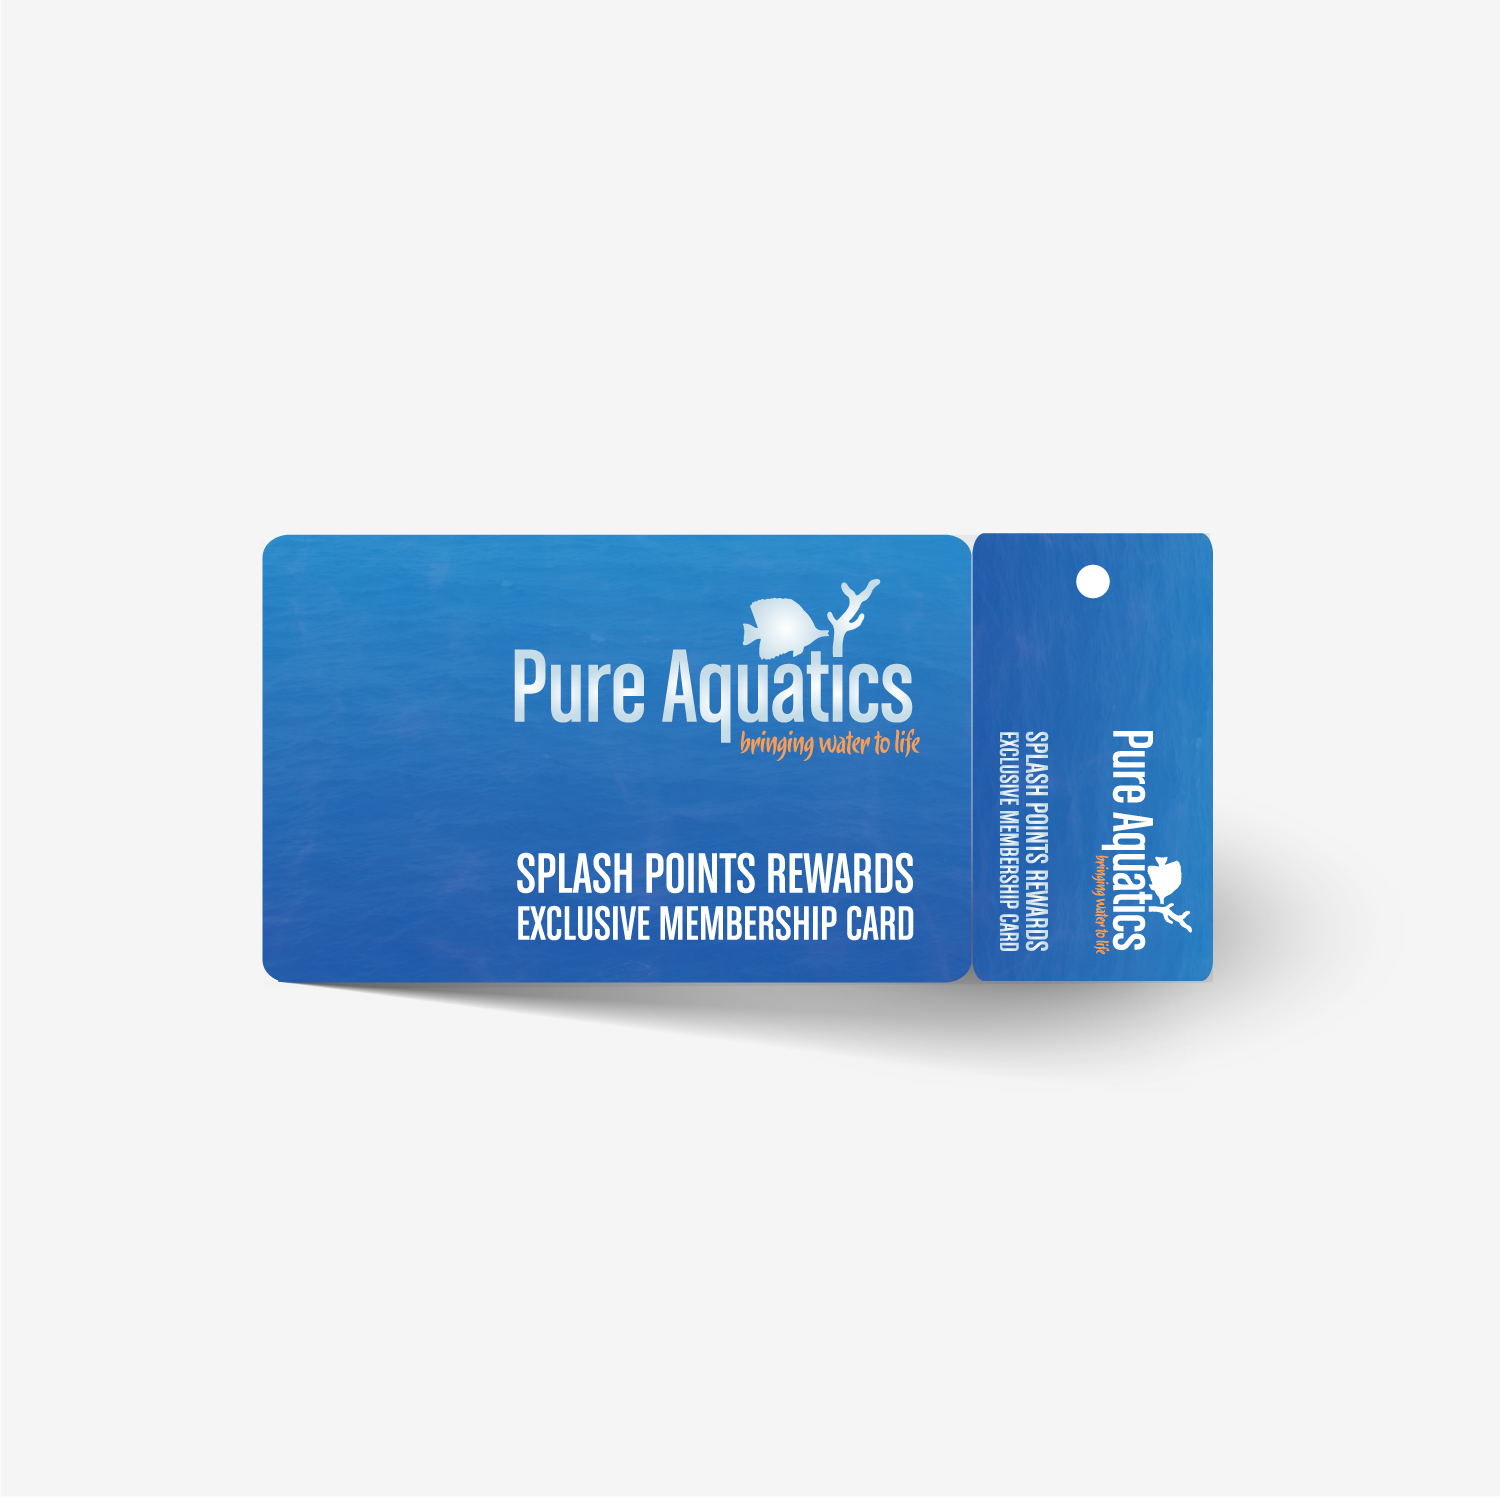 Pure Aquatics Membership Loyalty Card Design